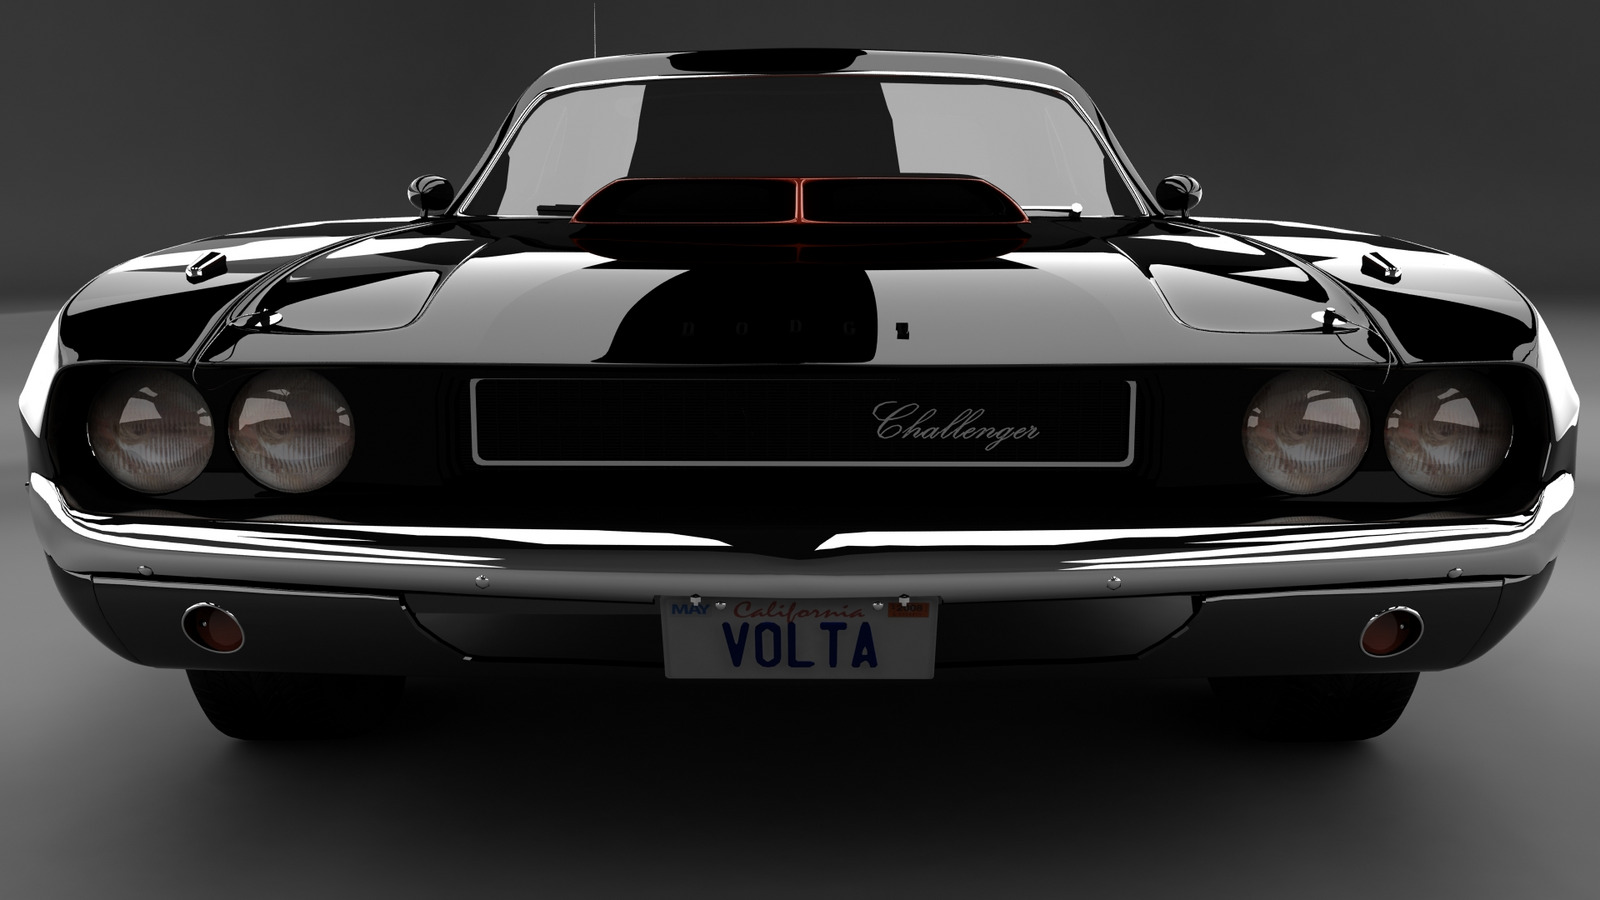 1970 Dodge Challenger Iphone Wallpaper Dodge Challenger 1970 8 Cool 1600x900